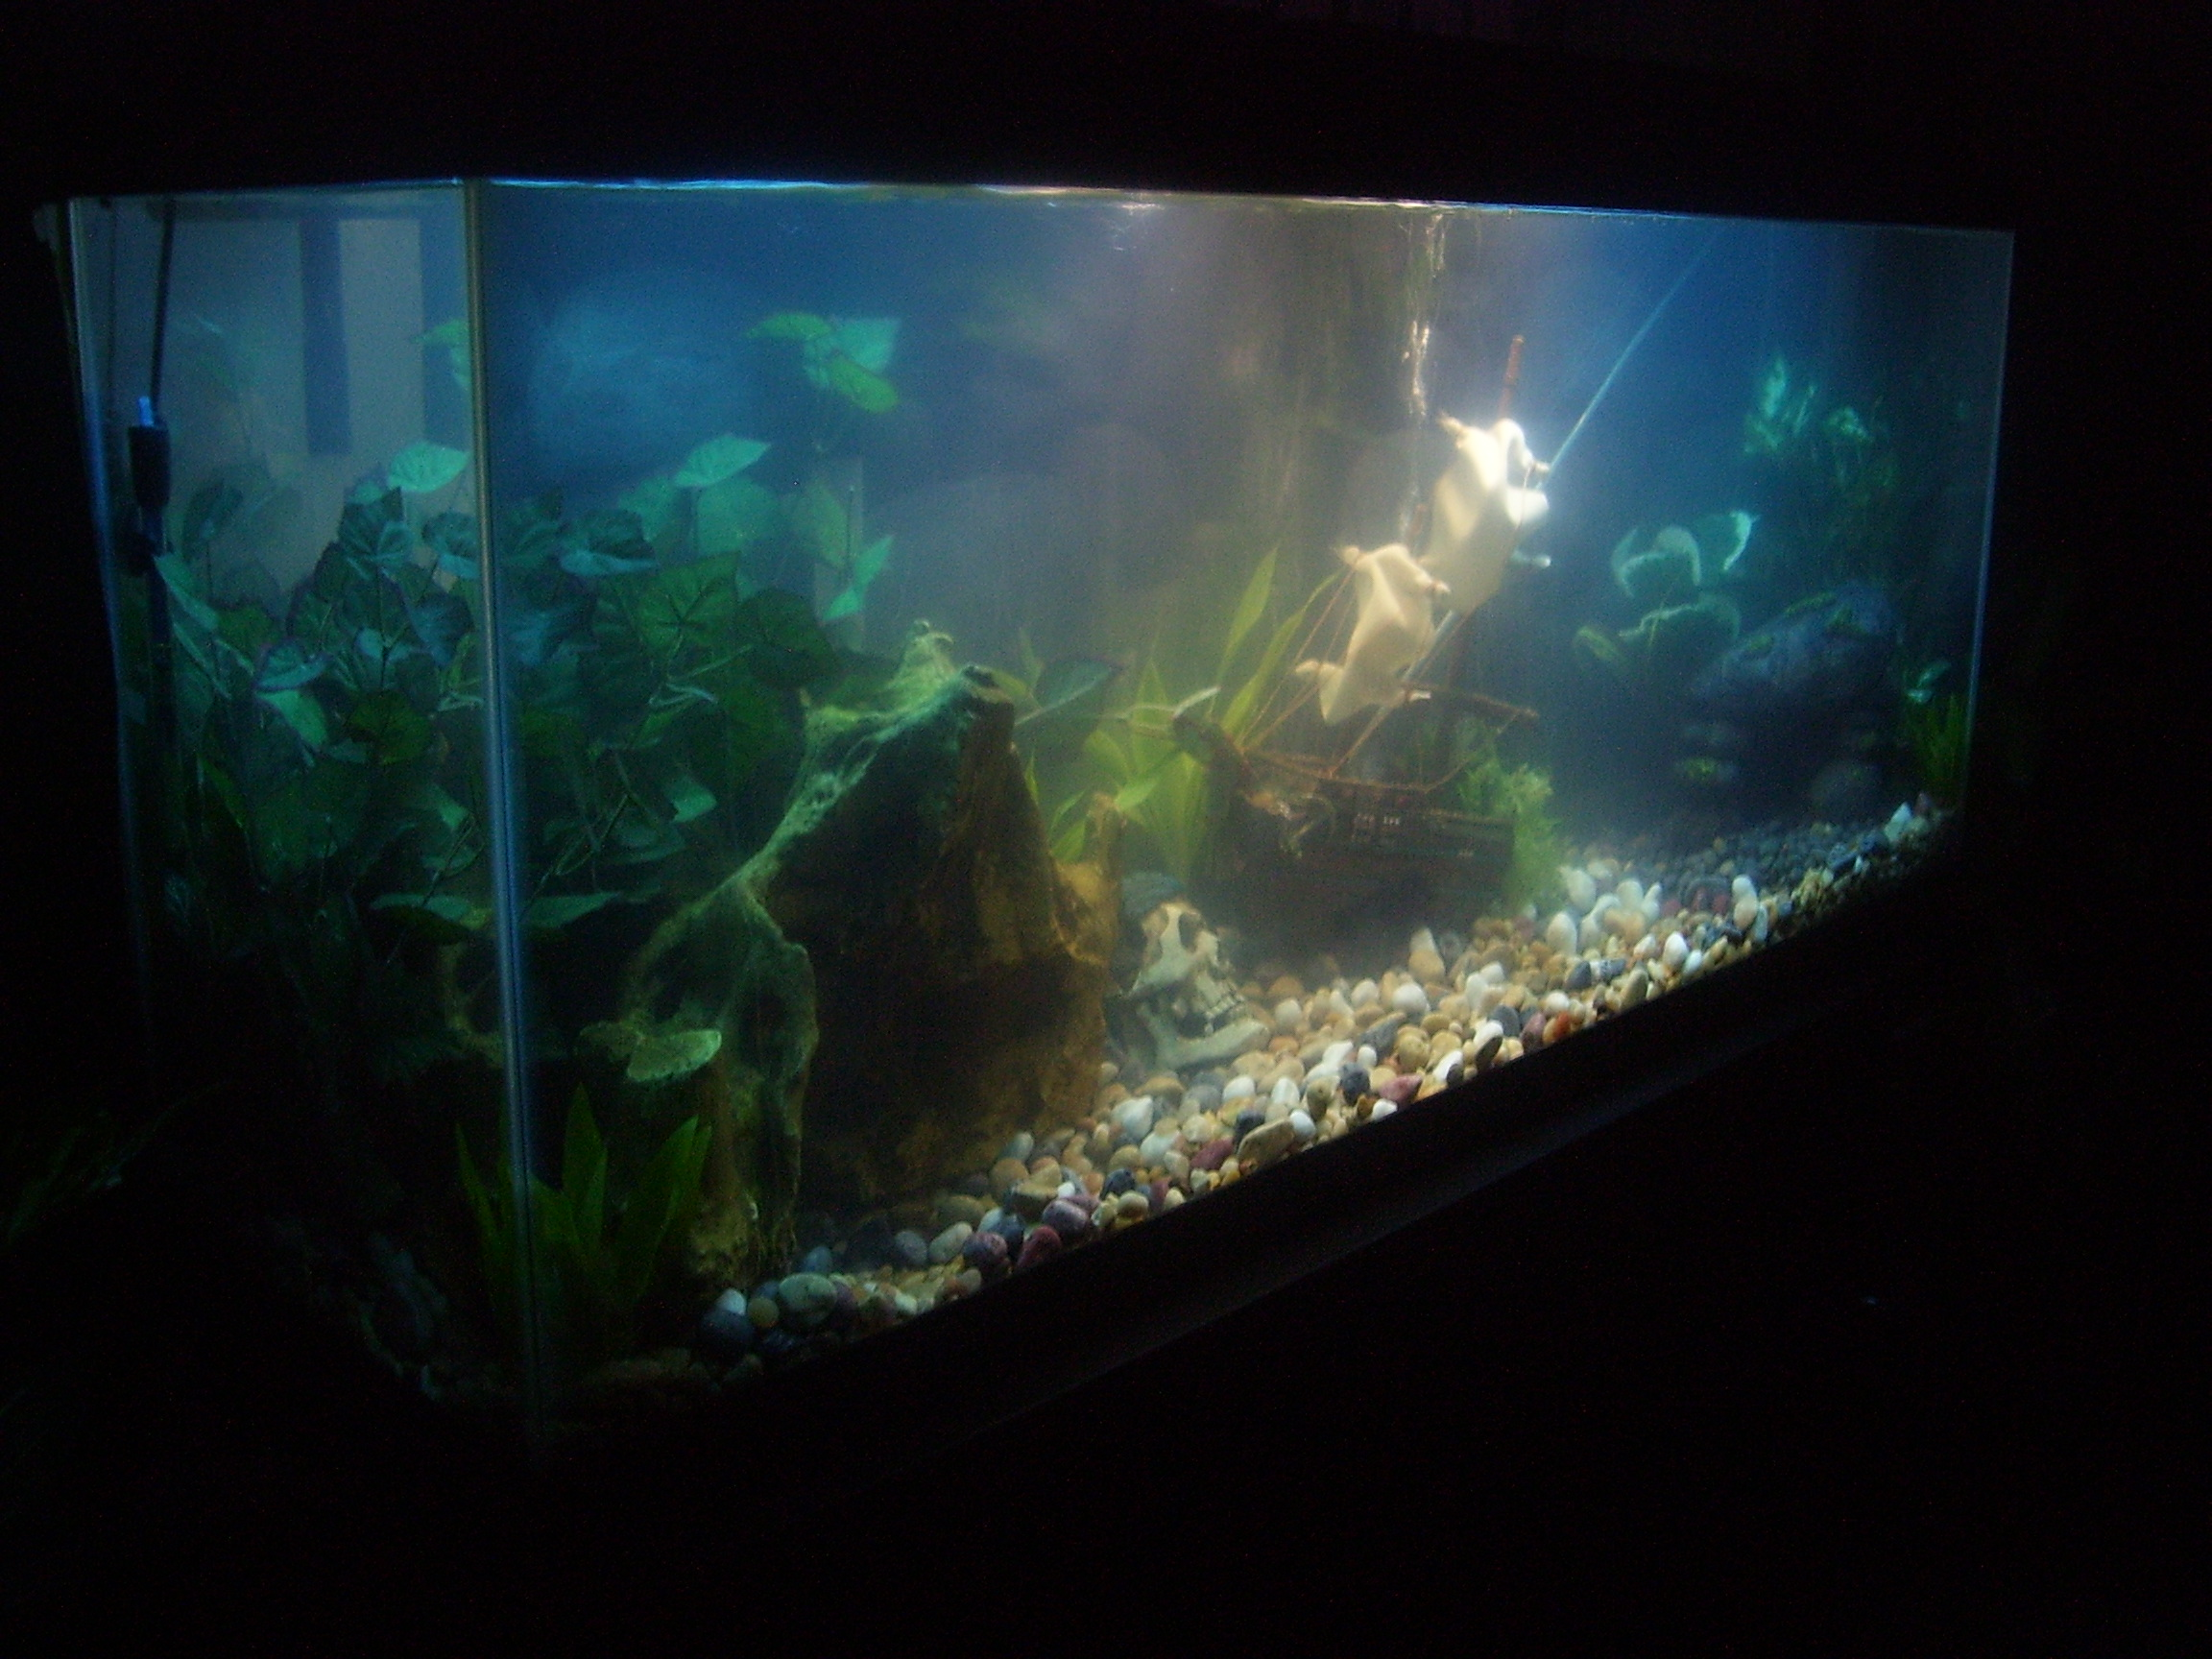 Aq2dsqag7wu likewise Fish Tank Decorations besides Jack Dempsey Biography moreover Diy Paludarium Project Journal 193455 likewise Top Freshwater Tanks. on oscar cichlids in 55 gal tank